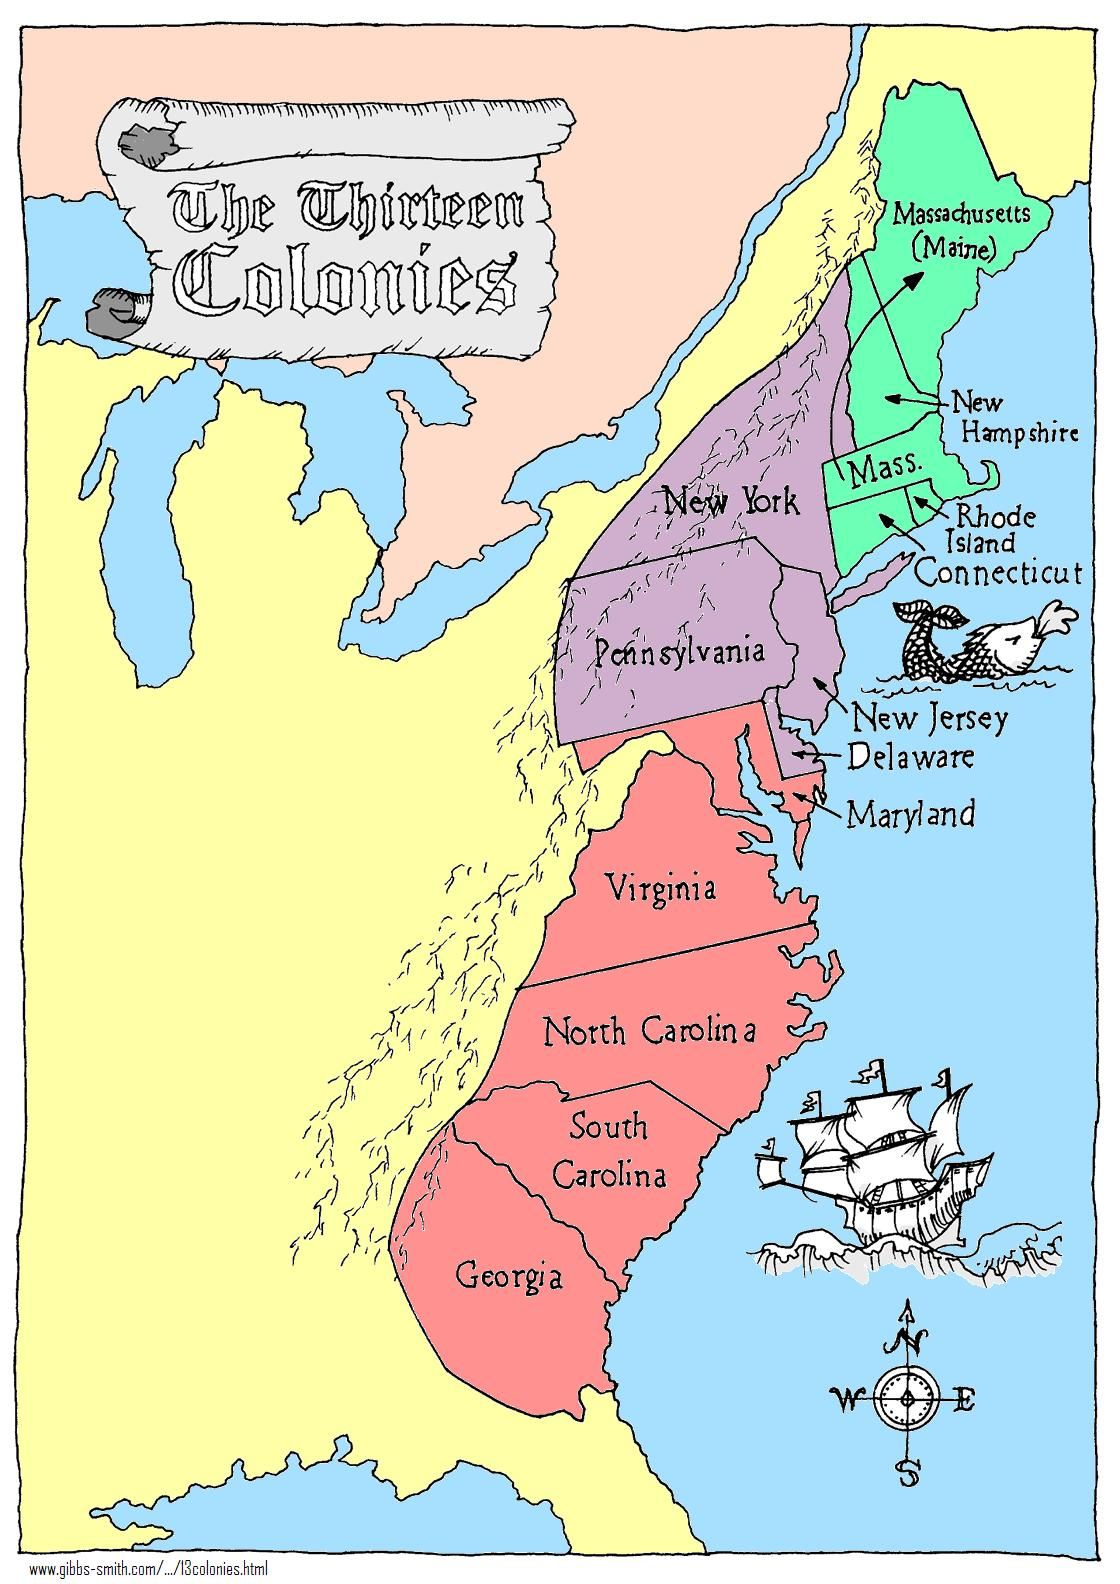 Thirteen Colonies Map Rd Quarter Student Teaching Pinterest - Us colonies and england world map